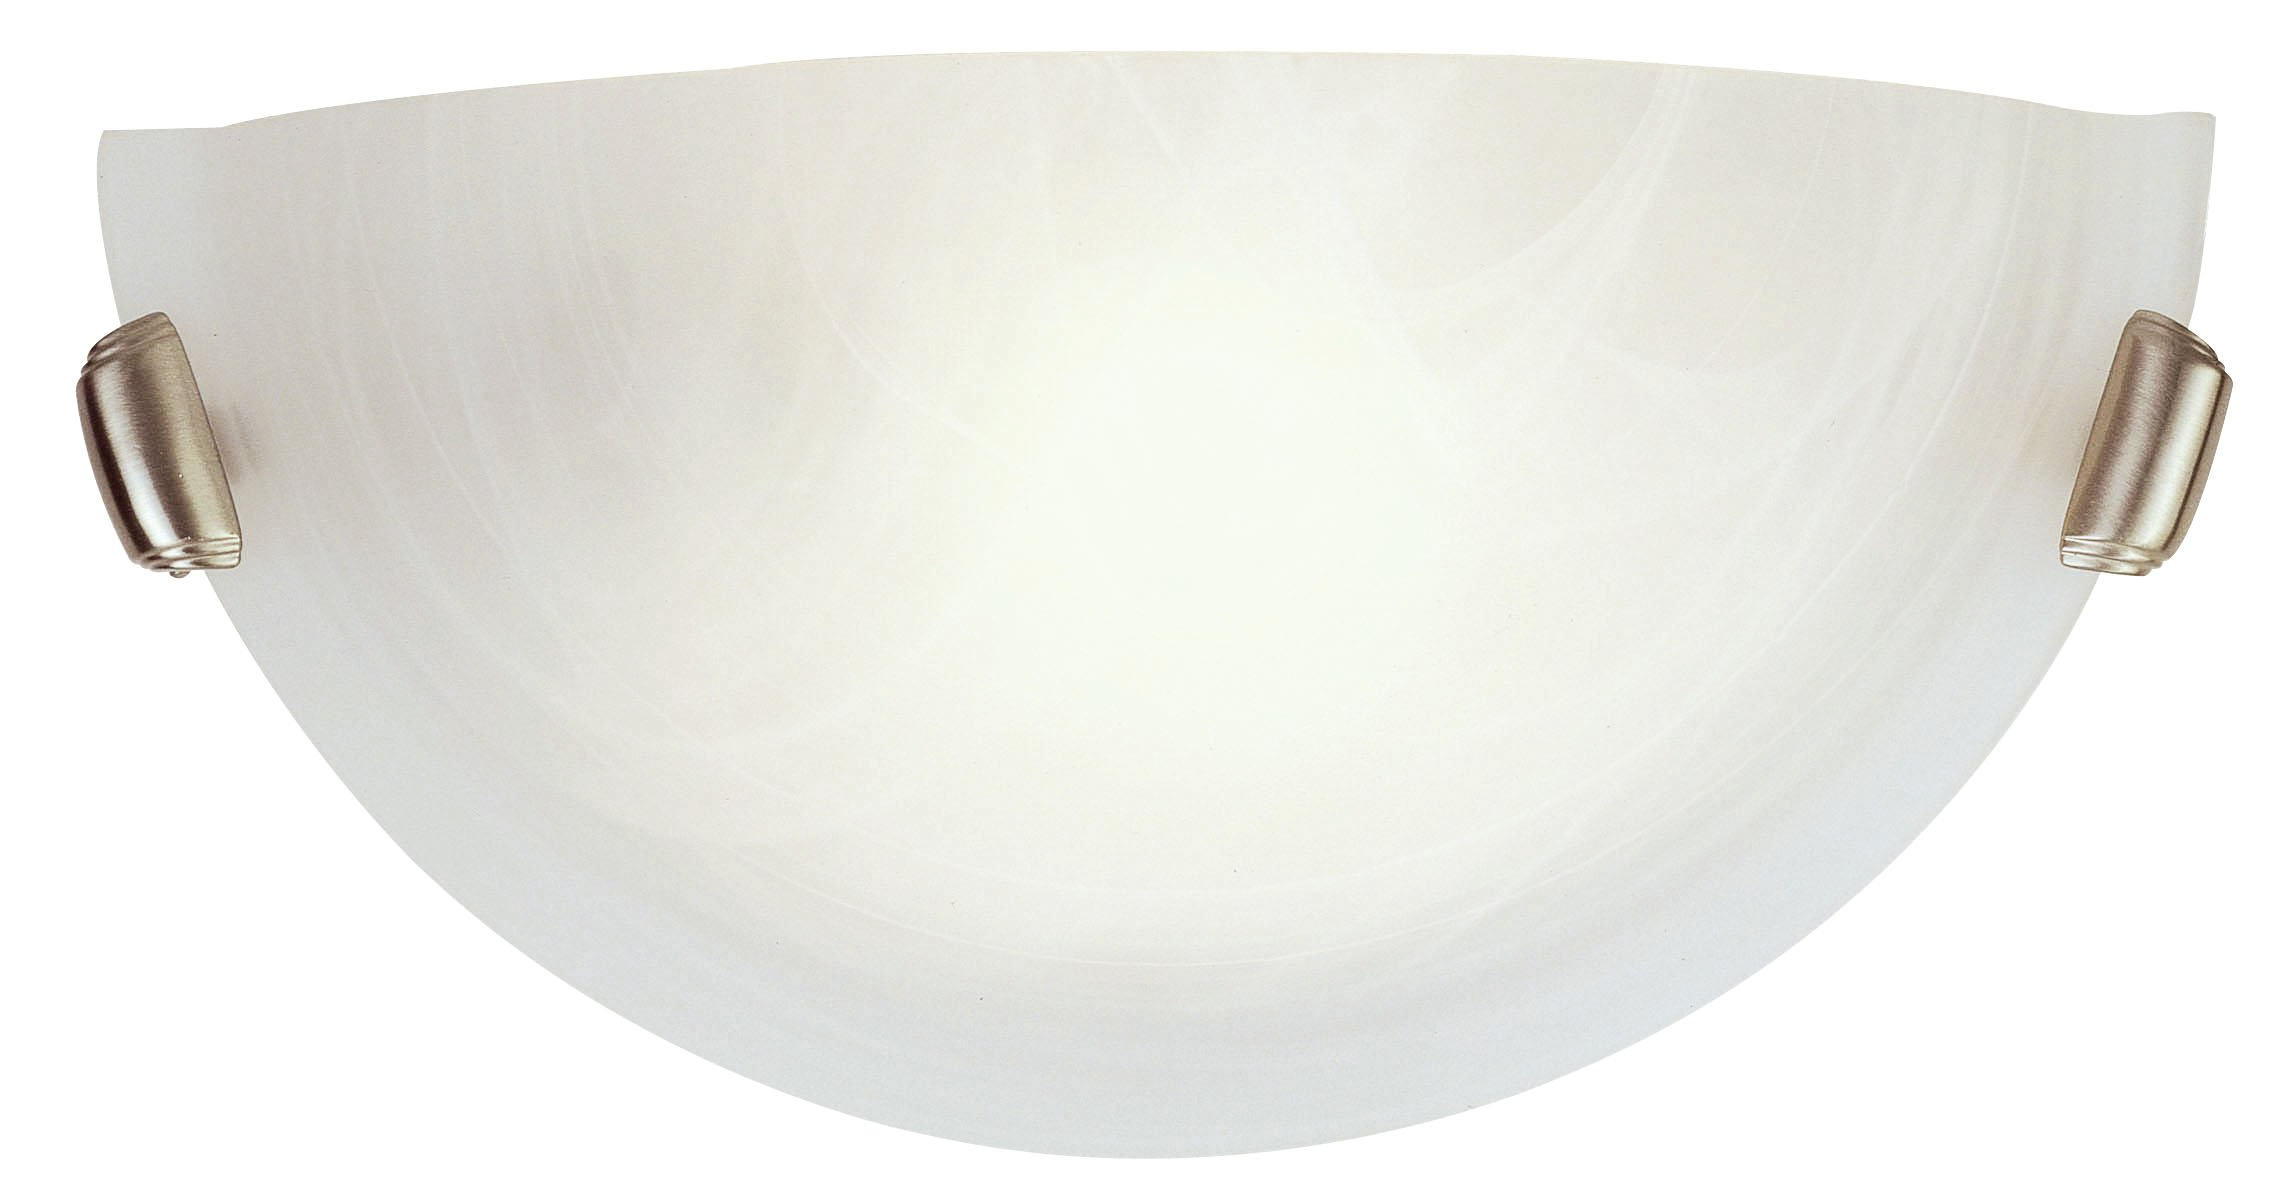 Livex Lighting 4271-91 Home Basics 1 Light Brushed Nickel Wall Sconce with White Alabaster Glass